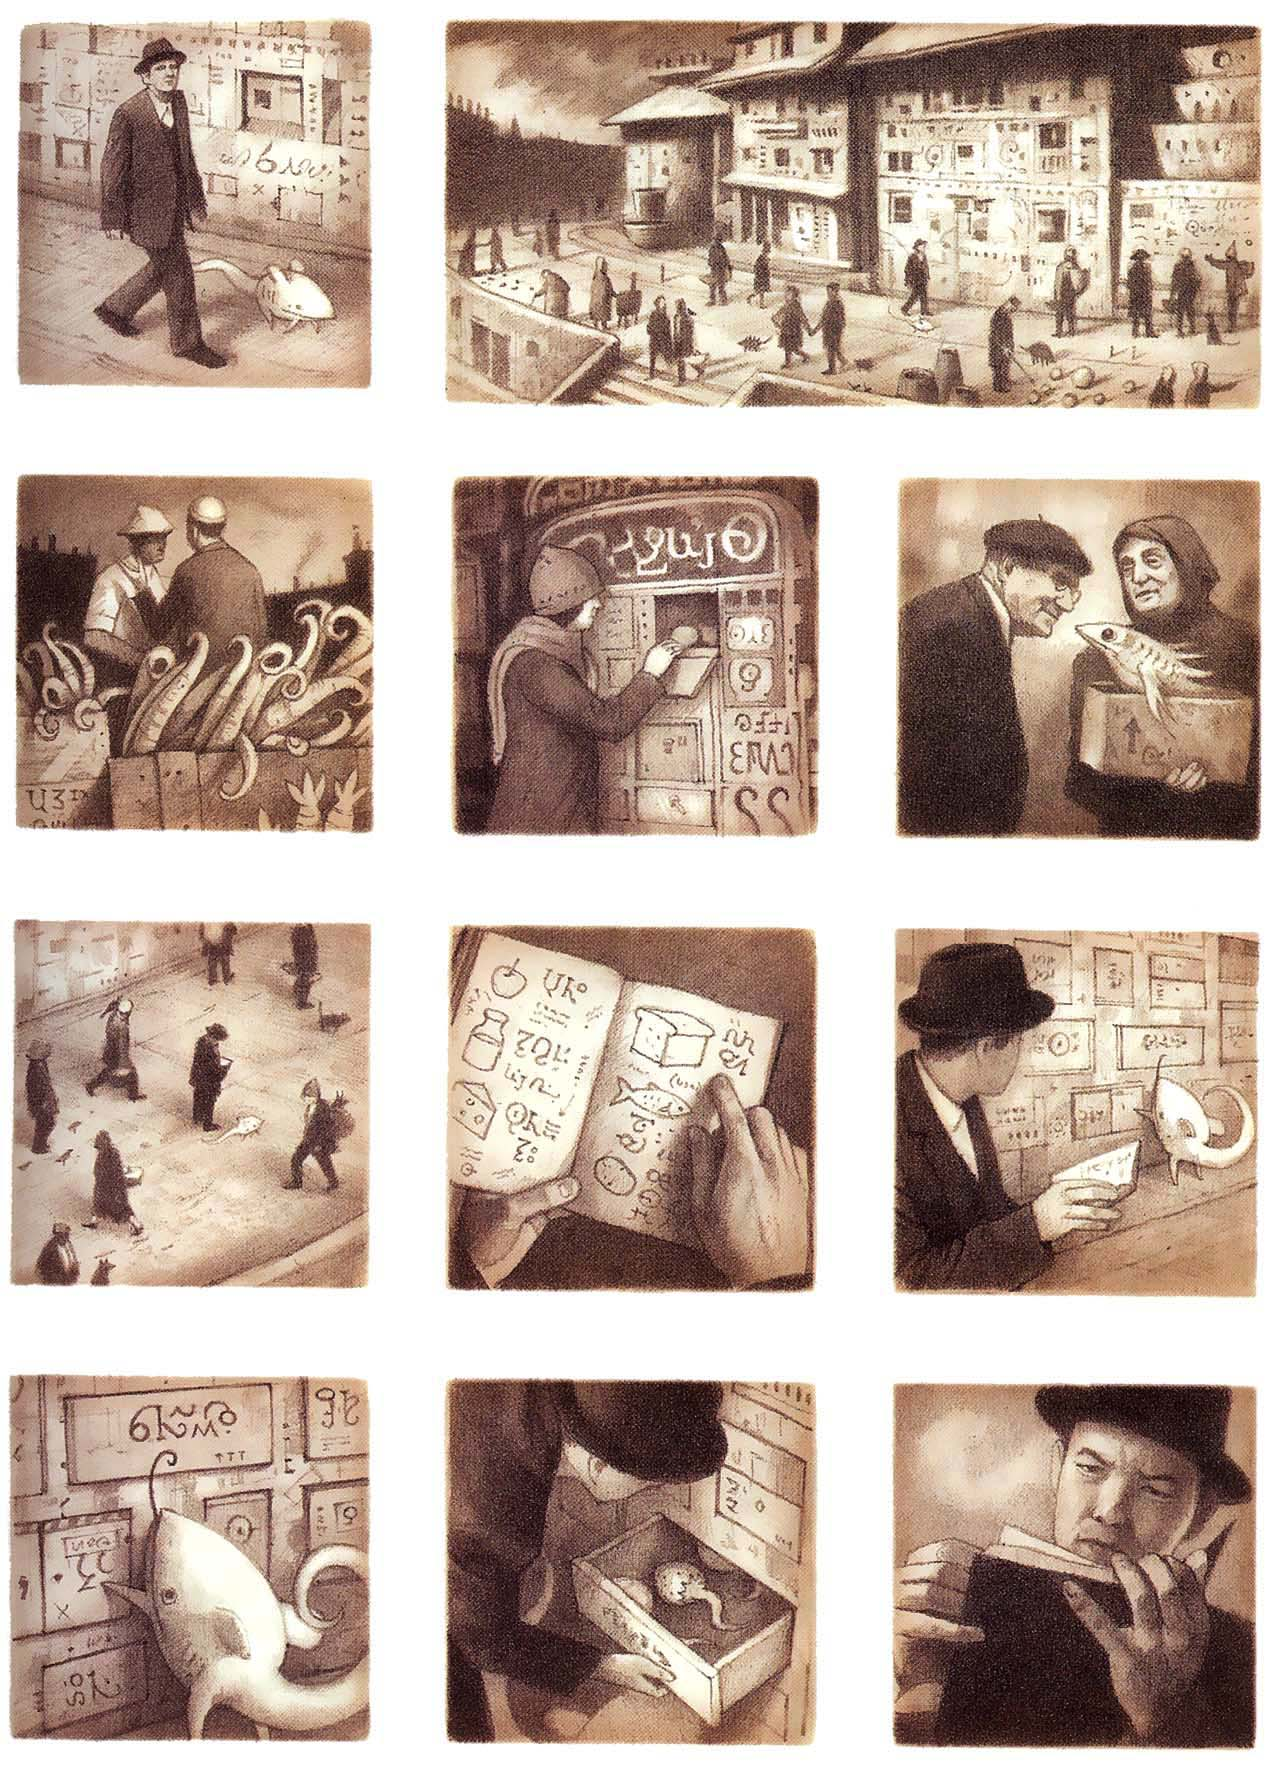 the arrival shaun tan belonging essay The arrival shaun tan belonging essay - find someone to write your research paper april 22, 2018 work without wages: an instagram essay #channelsurfing.